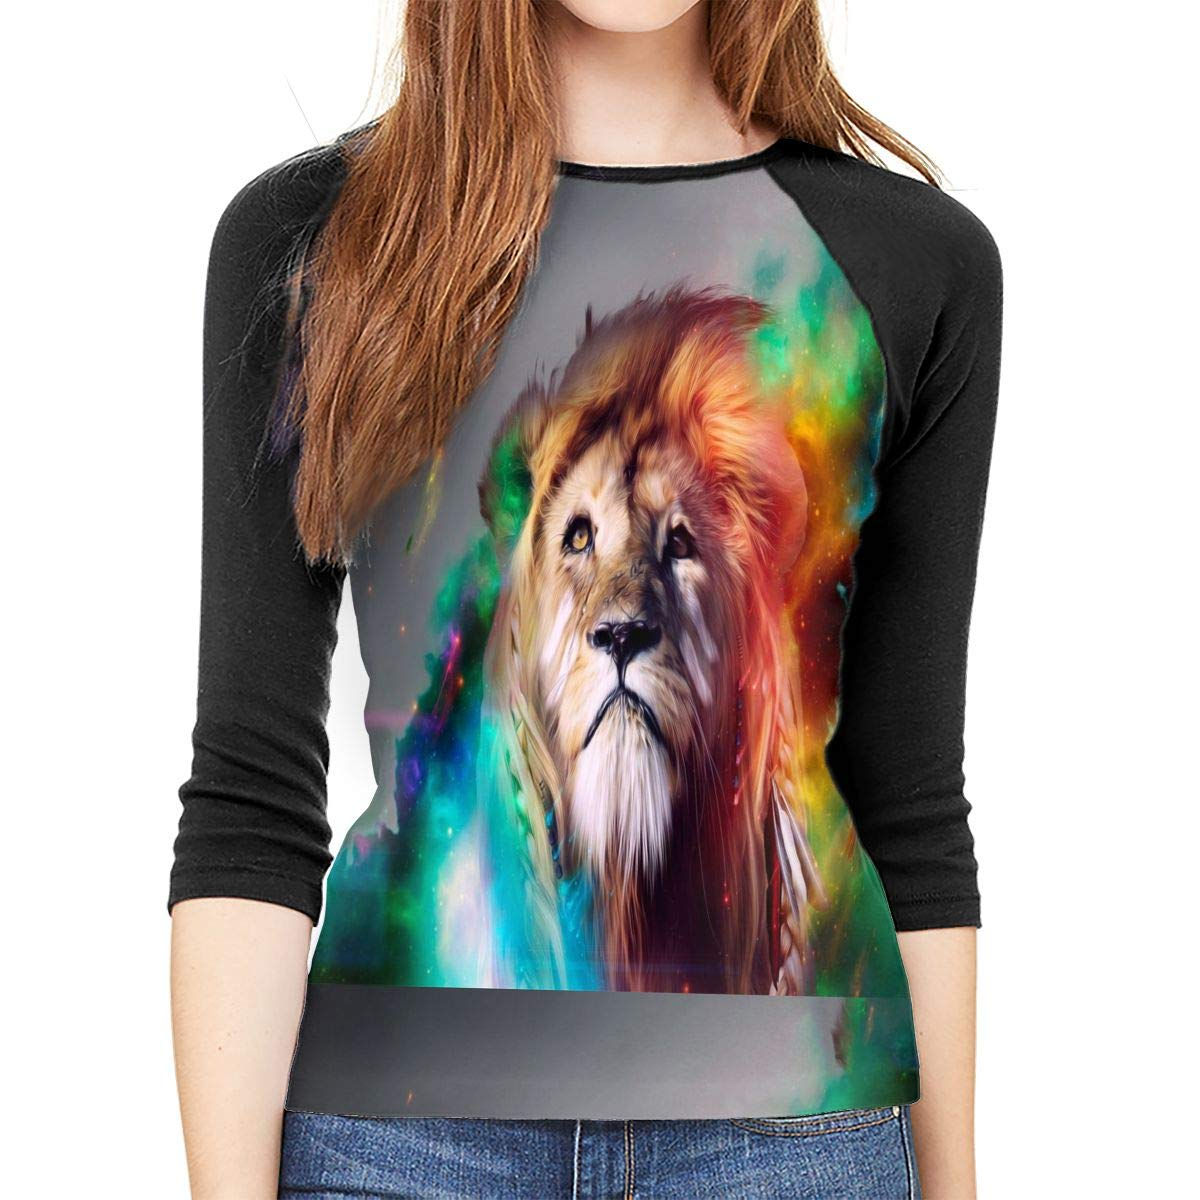 SHDFhgHGF 3D Abstract Fantasy Lion Womens 3//4 Sleeve Casual Scoop Neck Tops Tee